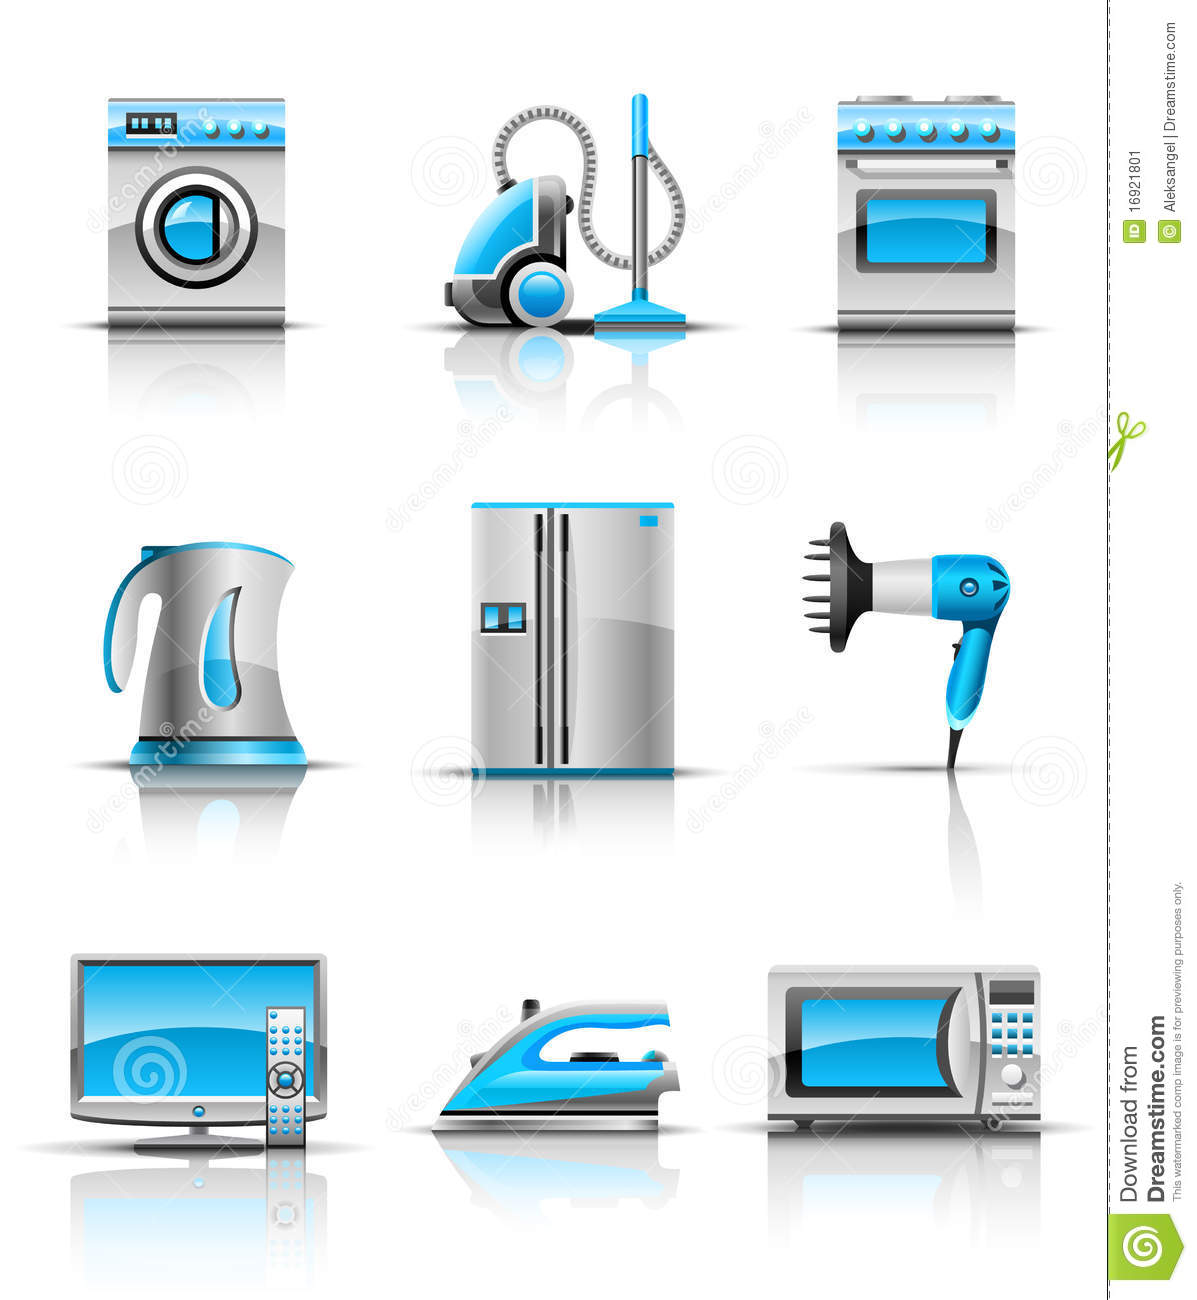 Kitchen appliances clipart - Set Icon Of Household Appliances Illustration Isolated On White